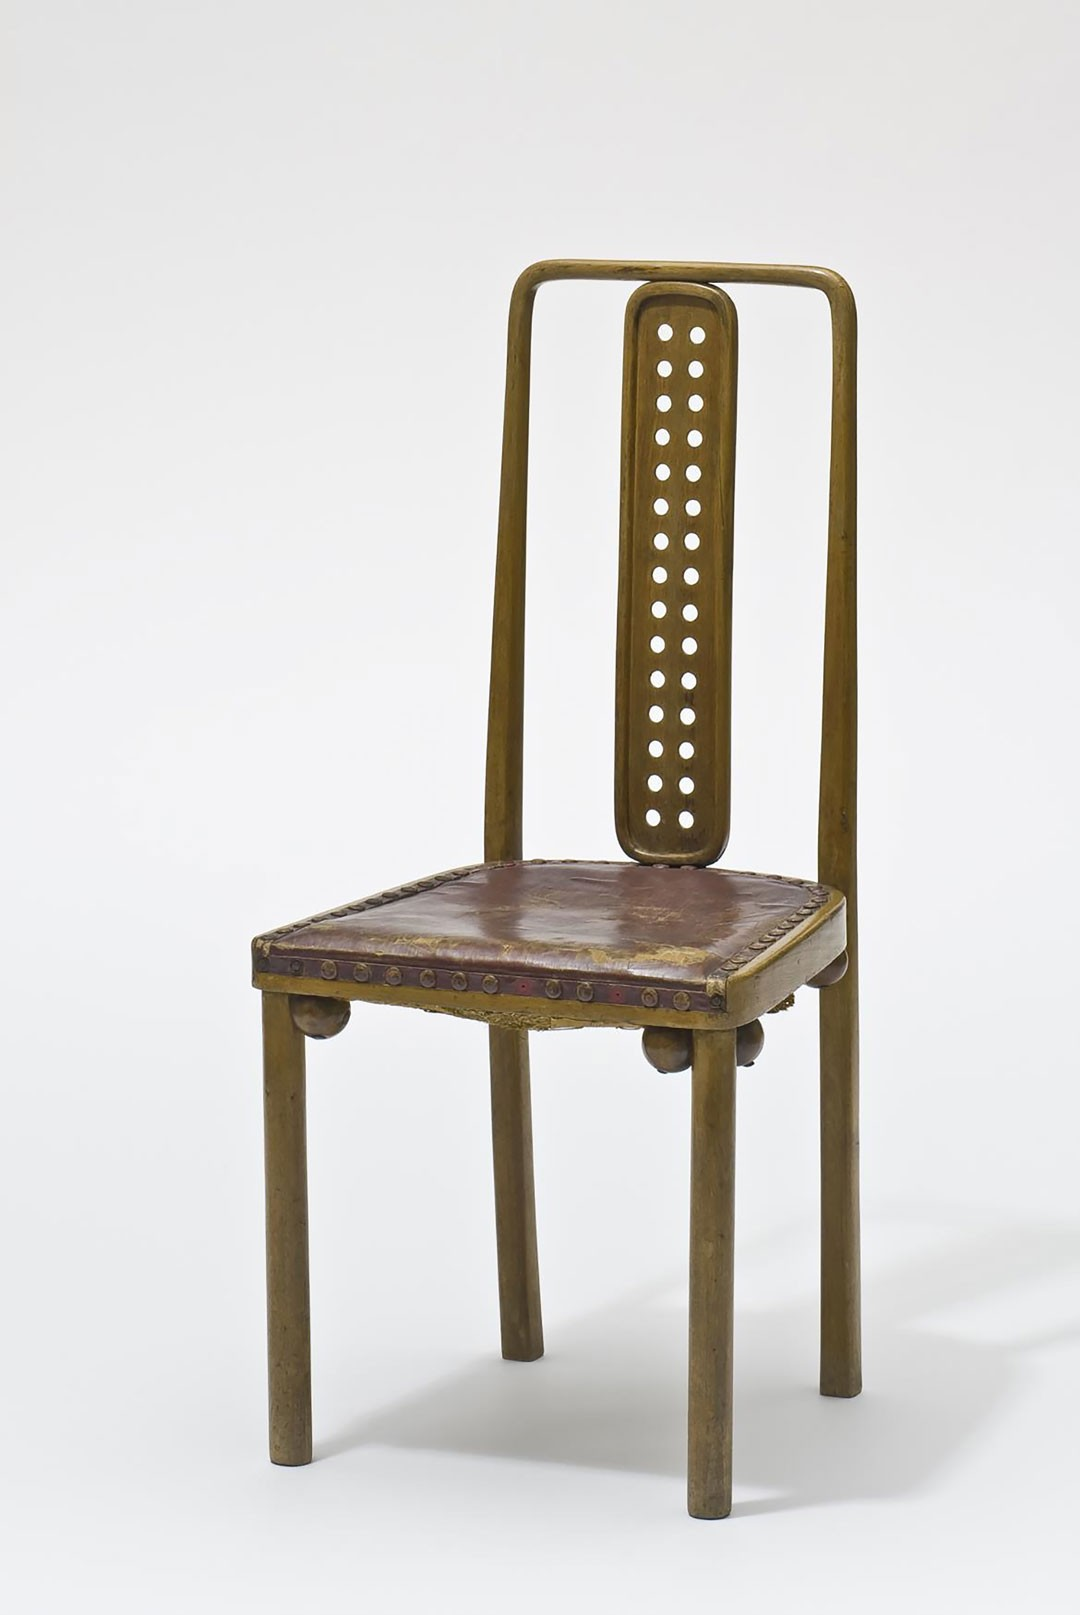 <BODY><div>Josef Hoffmann, Chair, Model No. 322, for the dining room of the Sanatorium Westend in Purkersdorf, Vienna, 1904</div><div>© MAK/Georg Mayer</div><div> </div></BODY>